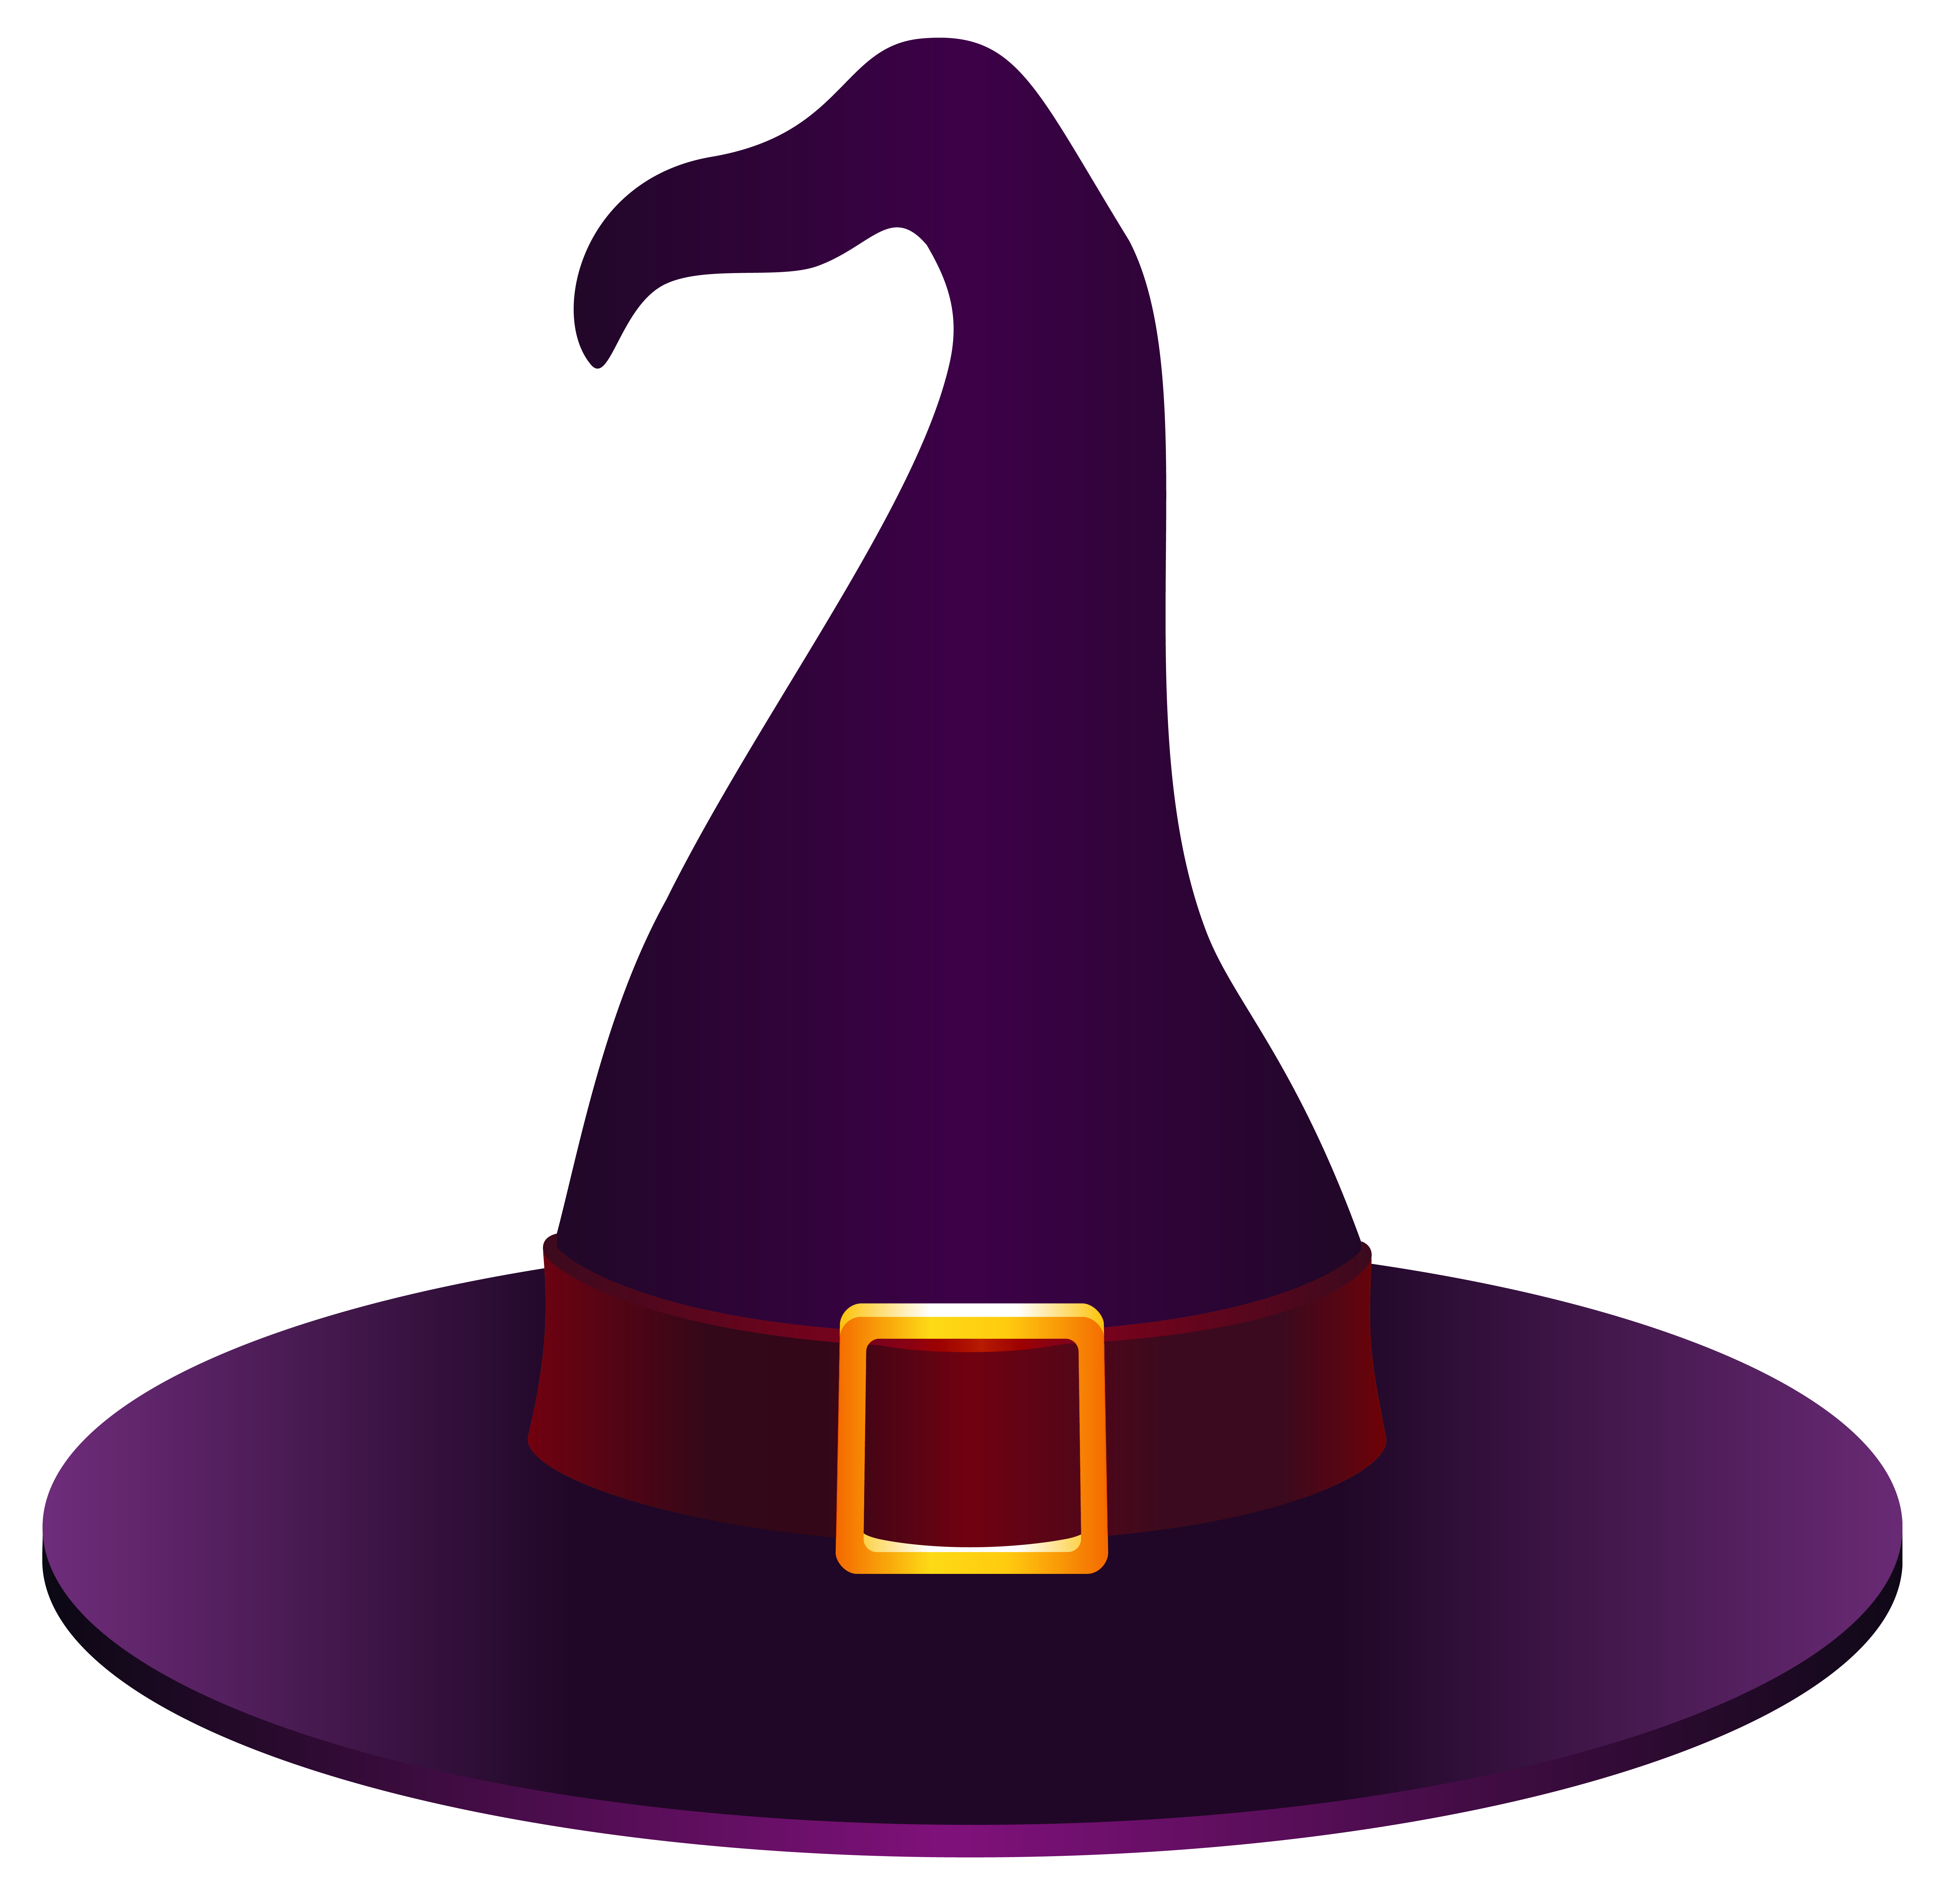 Witch Hat Clipart Picture-Witch hat clipart picture-16